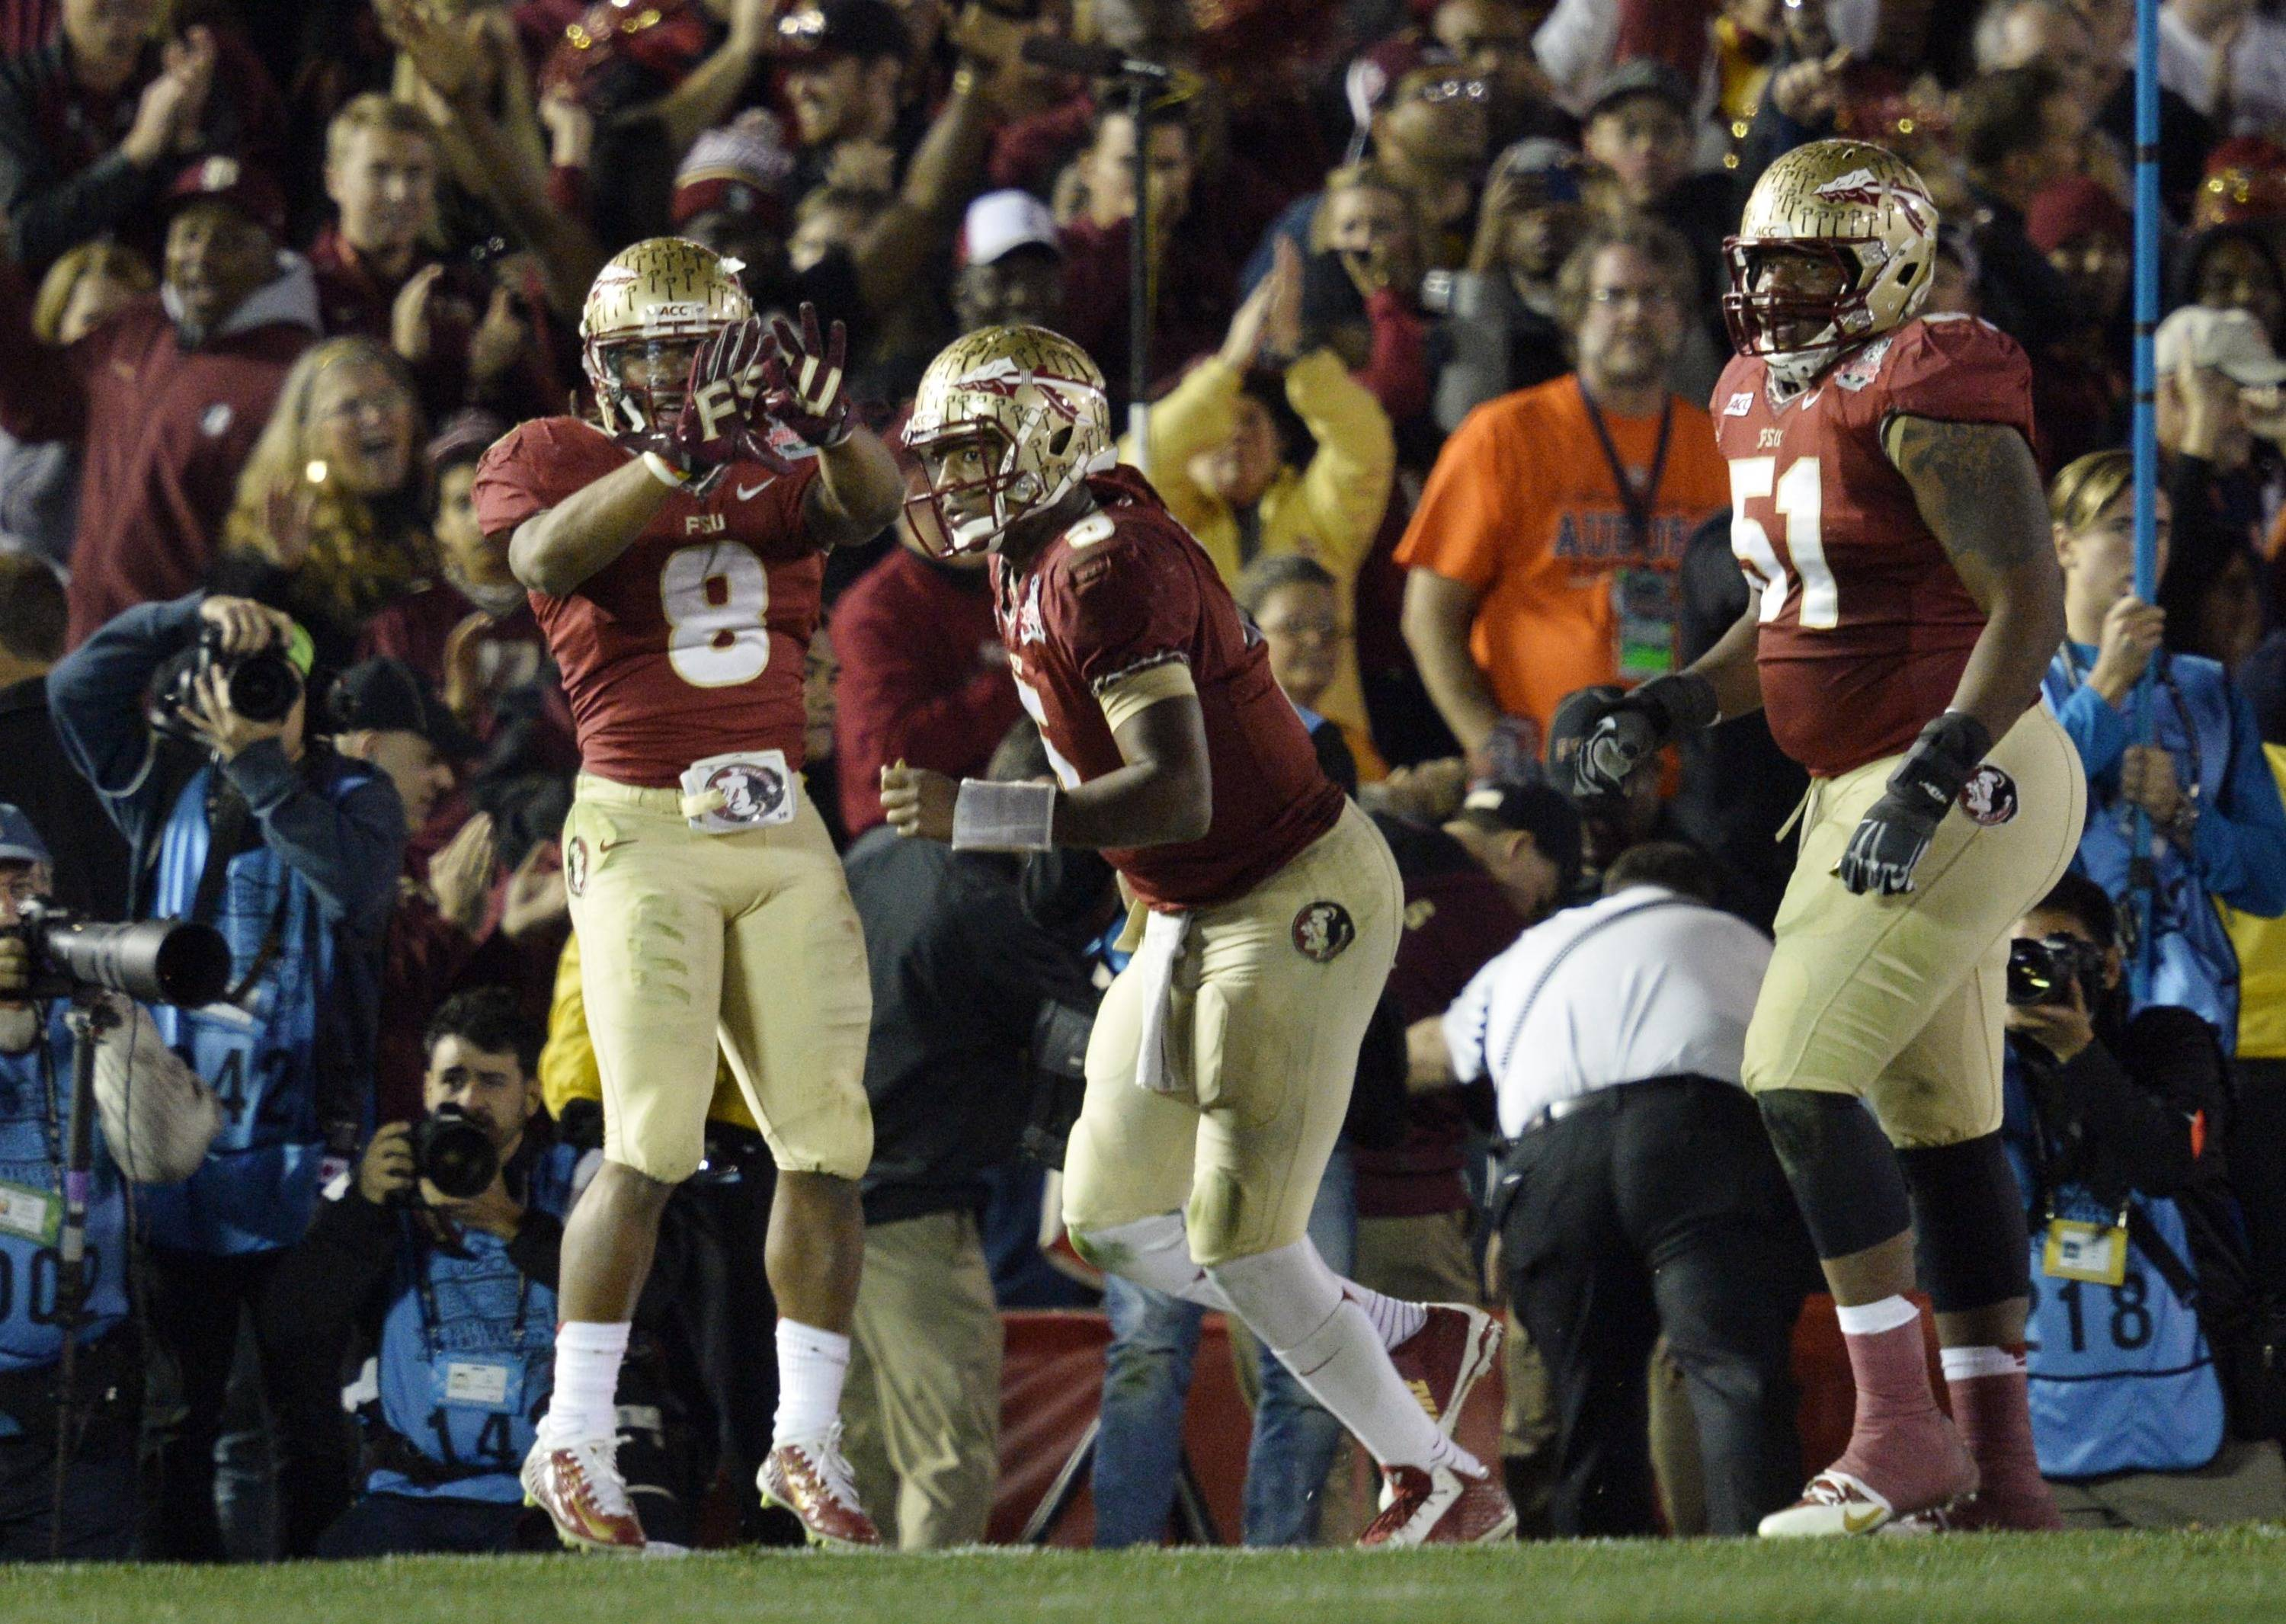 Jan 6, 2014; Pasadena, CA, USA; Florida State Seminoles running back Devonta Freeman (8) celebrates with teammates after scoring a touchdown against the Auburn Tigers during the first half of the 2014 BCS National Championship game at the Rose Bowl.  Mandatory Credit: Robert Hanashiro-USA TODAY Sports